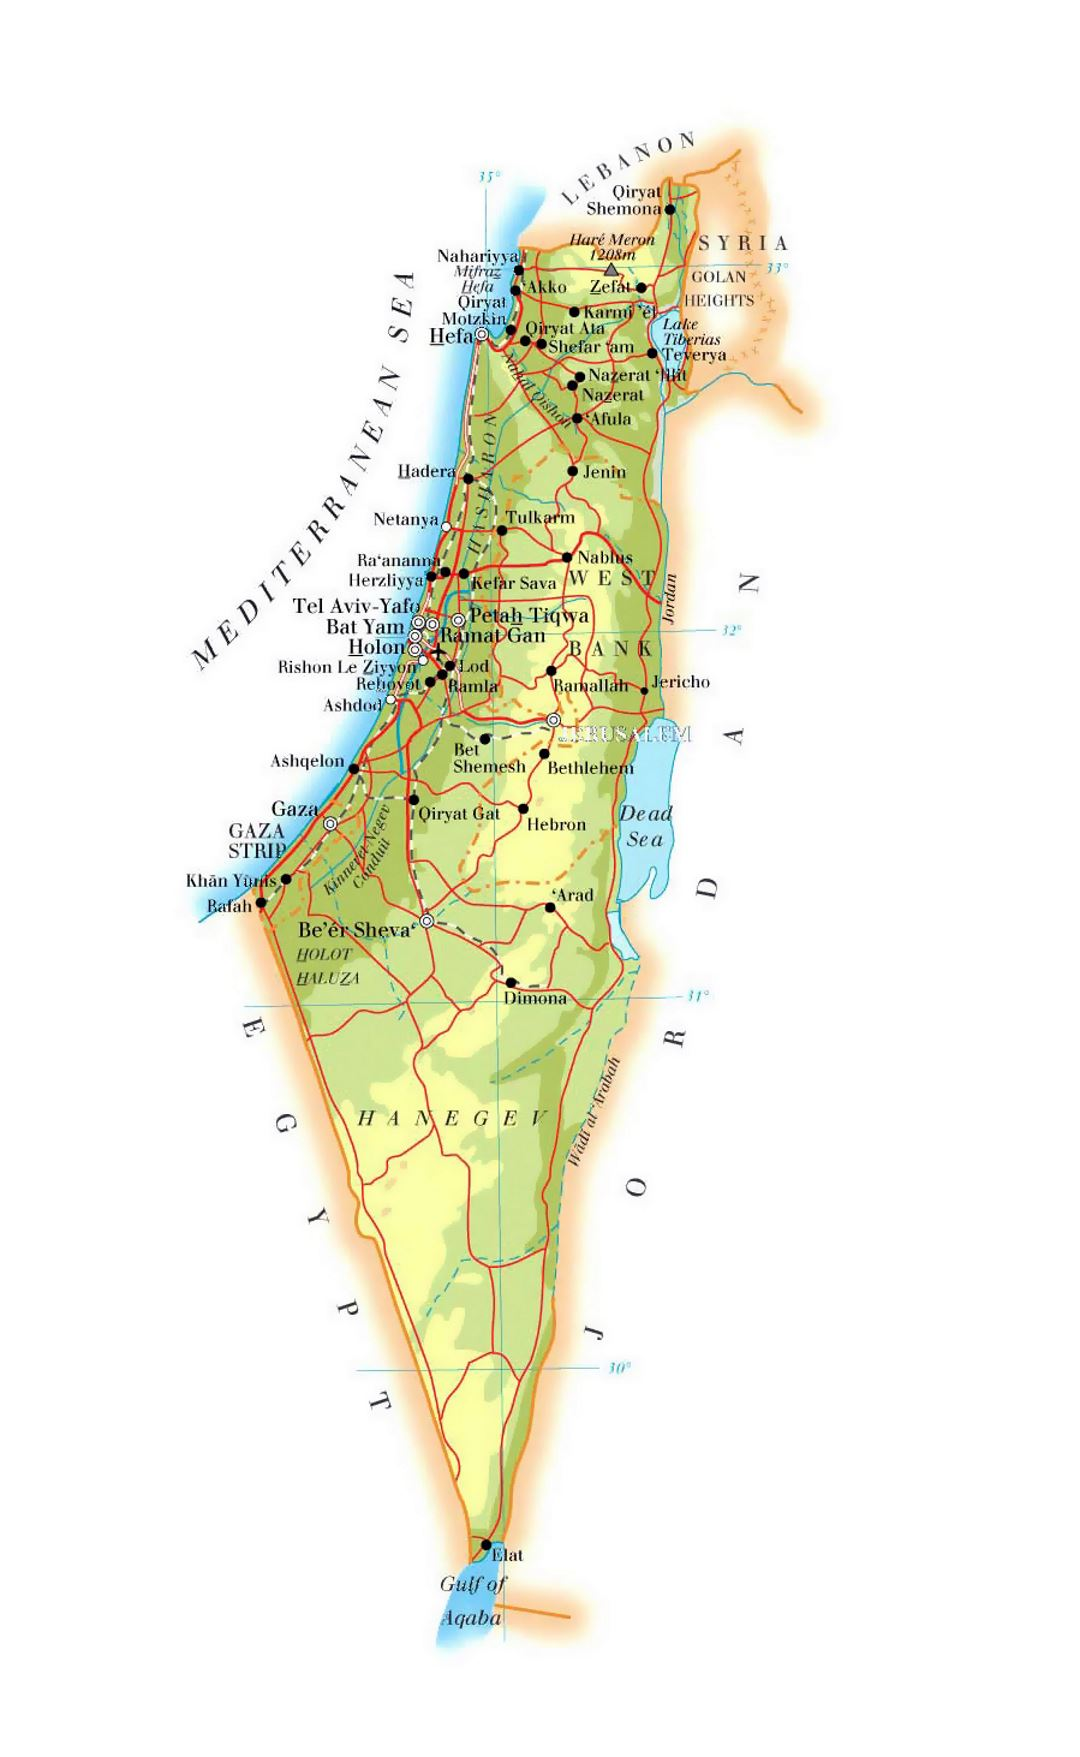 Detailed elevation map of Israel with roads, cities and airports